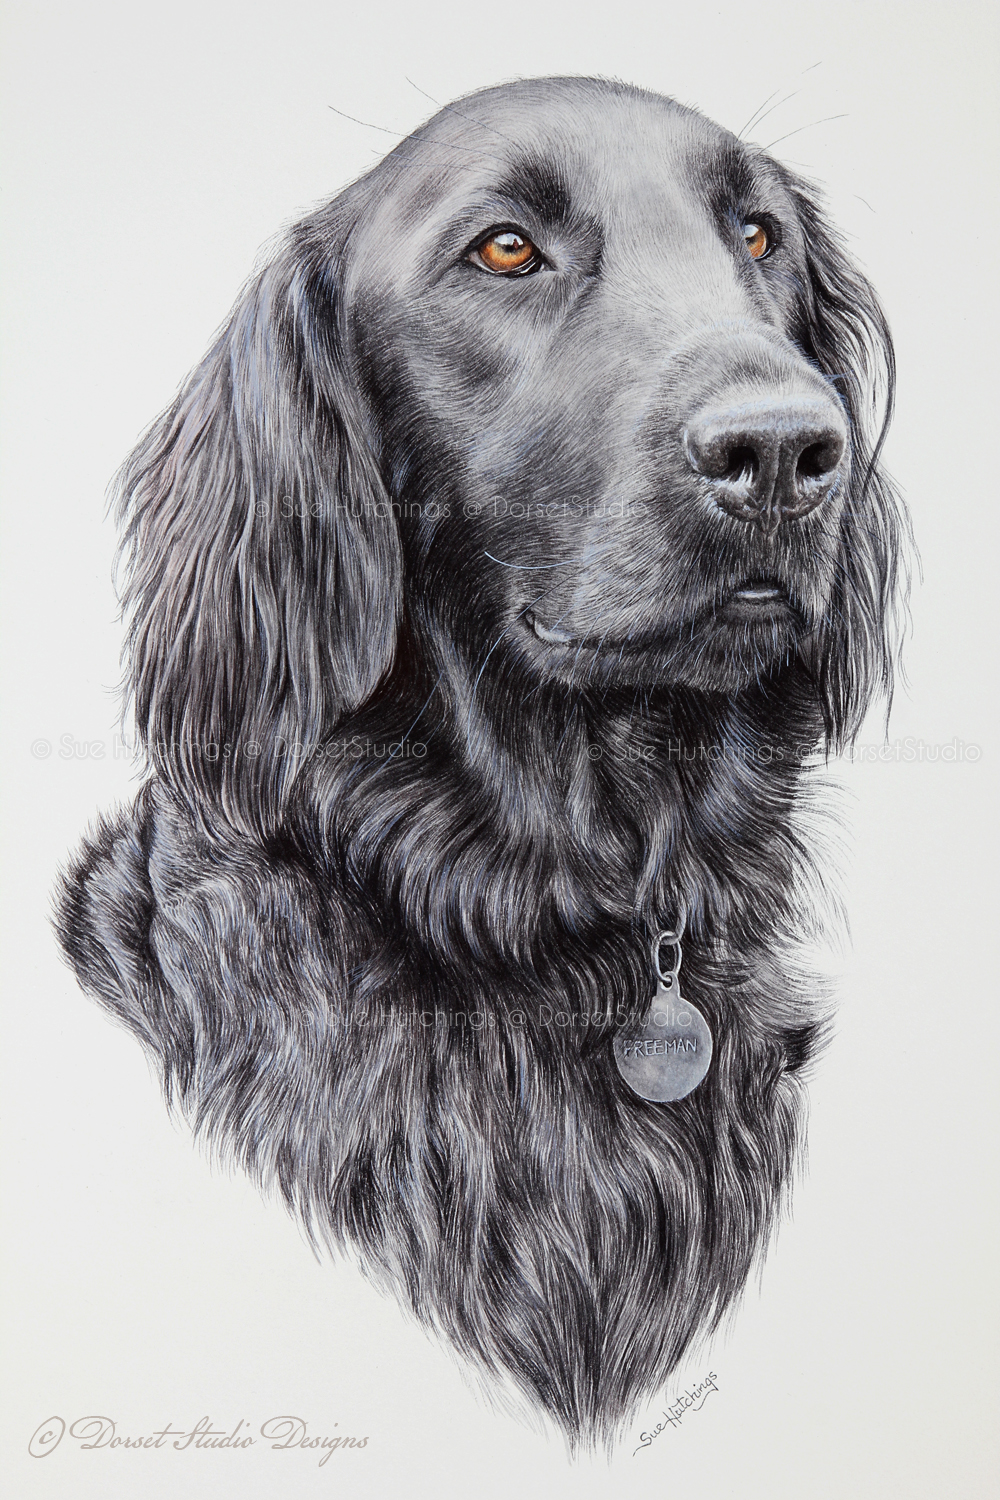 freeman-watercolour animal portrait-sue hutchings_dorset studio-10